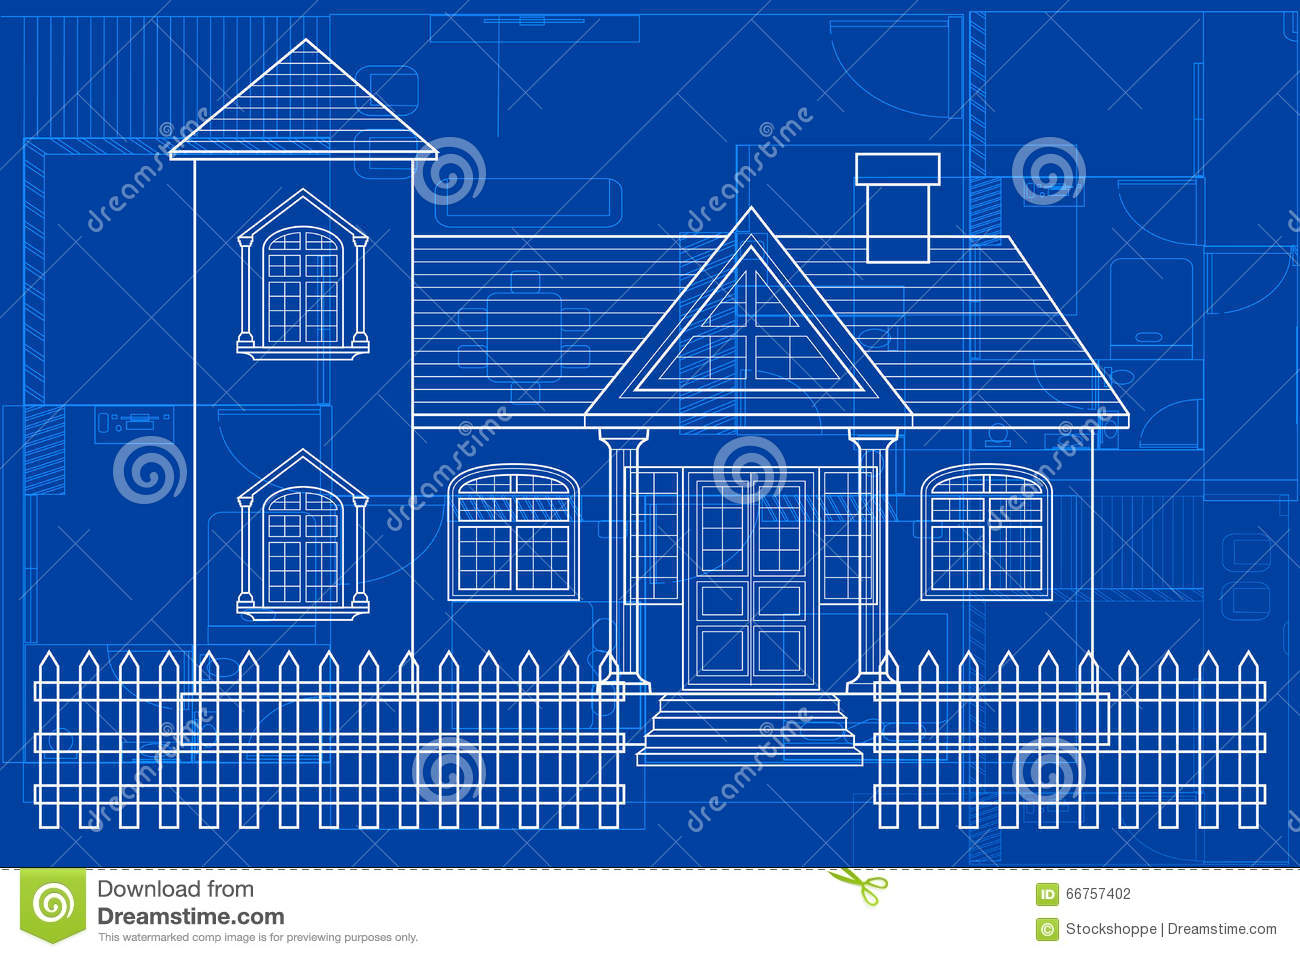 Blueprint of building stock vector illustration of digital 66757402 download blueprint of building stock vector illustration of digital 66757402 malvernweather Choice Image